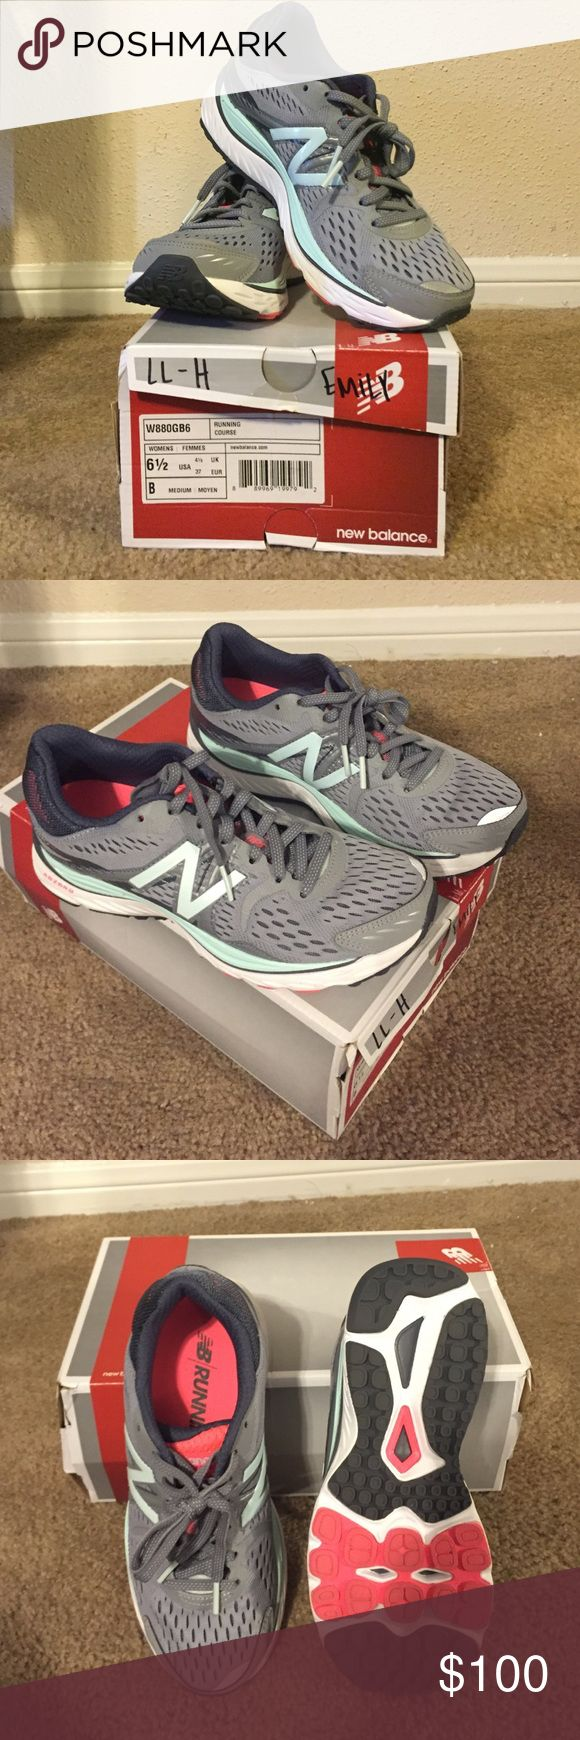 WOMEN's New balance W880v6 size: 6.5 (M) I work at a shoe store and receive shoes every 6 months to try it. (One of the benefits of working at my job). I wore these for 4 hours while working and they hurt my feet. I'm used to wearing Nike Lunarglide so these are not for me. Only been worn for 4 hours and kept it in the shoe box since. It's a great shoe but not for me New Balance Shoes Athletic Shoes